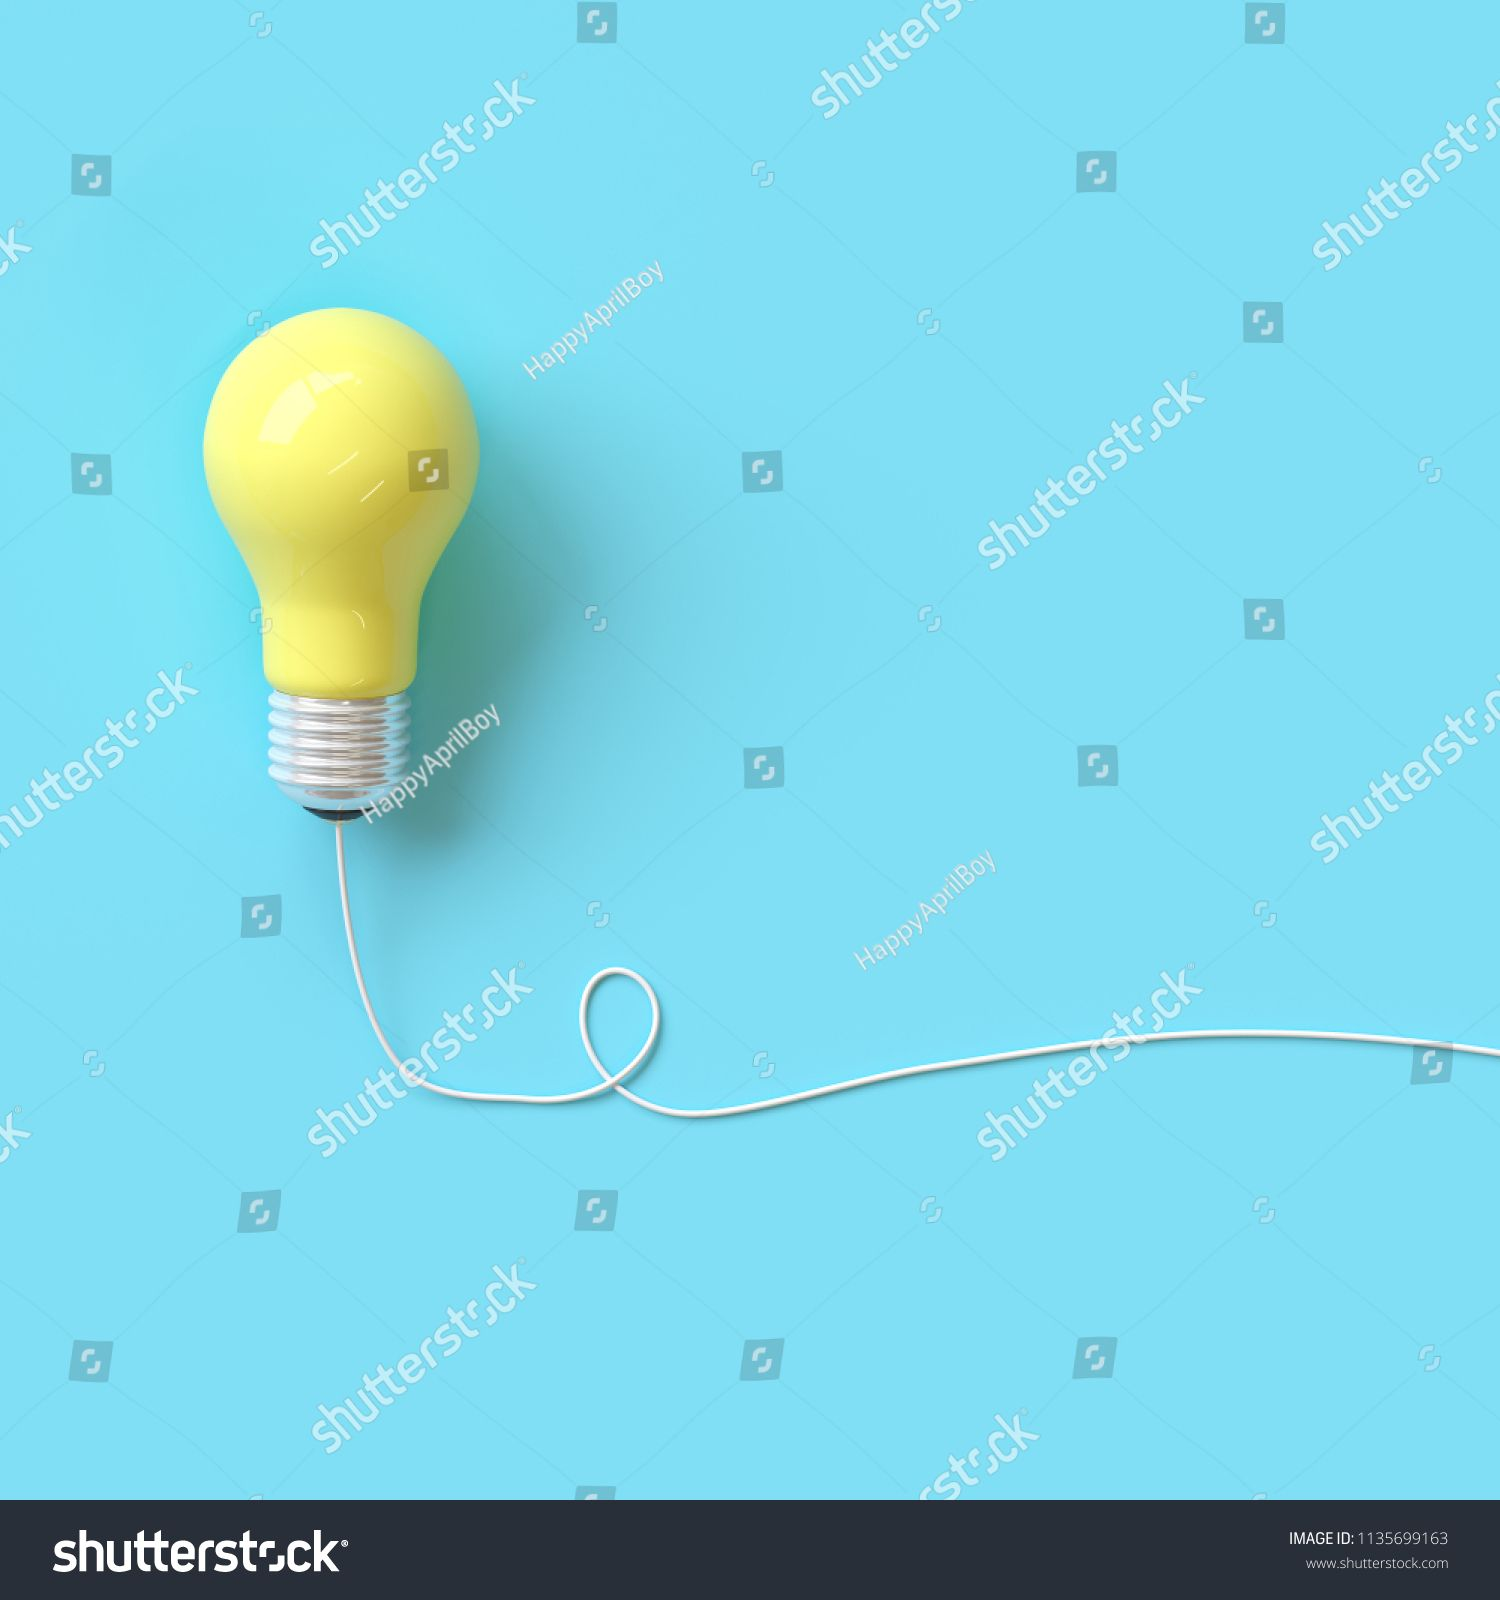 Yellow Lightbulb With Wire On Blue Background For Copyspace Minimal Idea Concept Top View Ad Aff Blue Backgrounds Light Bulb Social Media Design Graphics